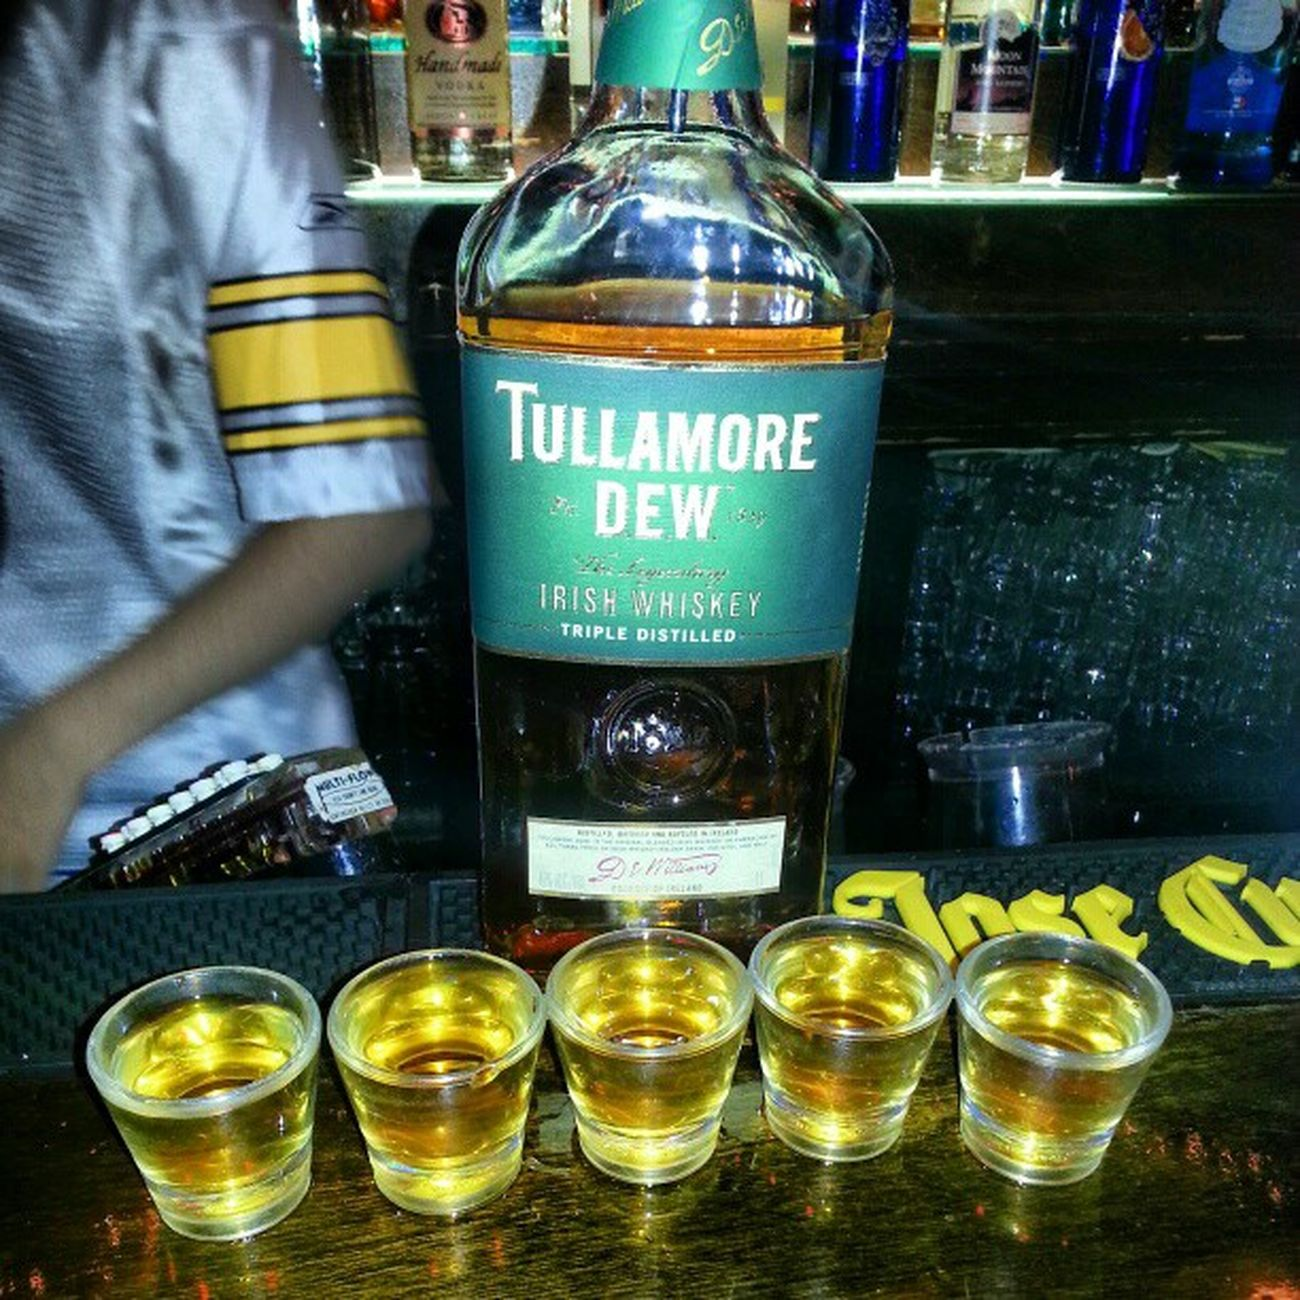 Recommended by my bartender NYC Nycalive LOL Dayumm shots whiskey goodtimes goodfriends citylife crazy